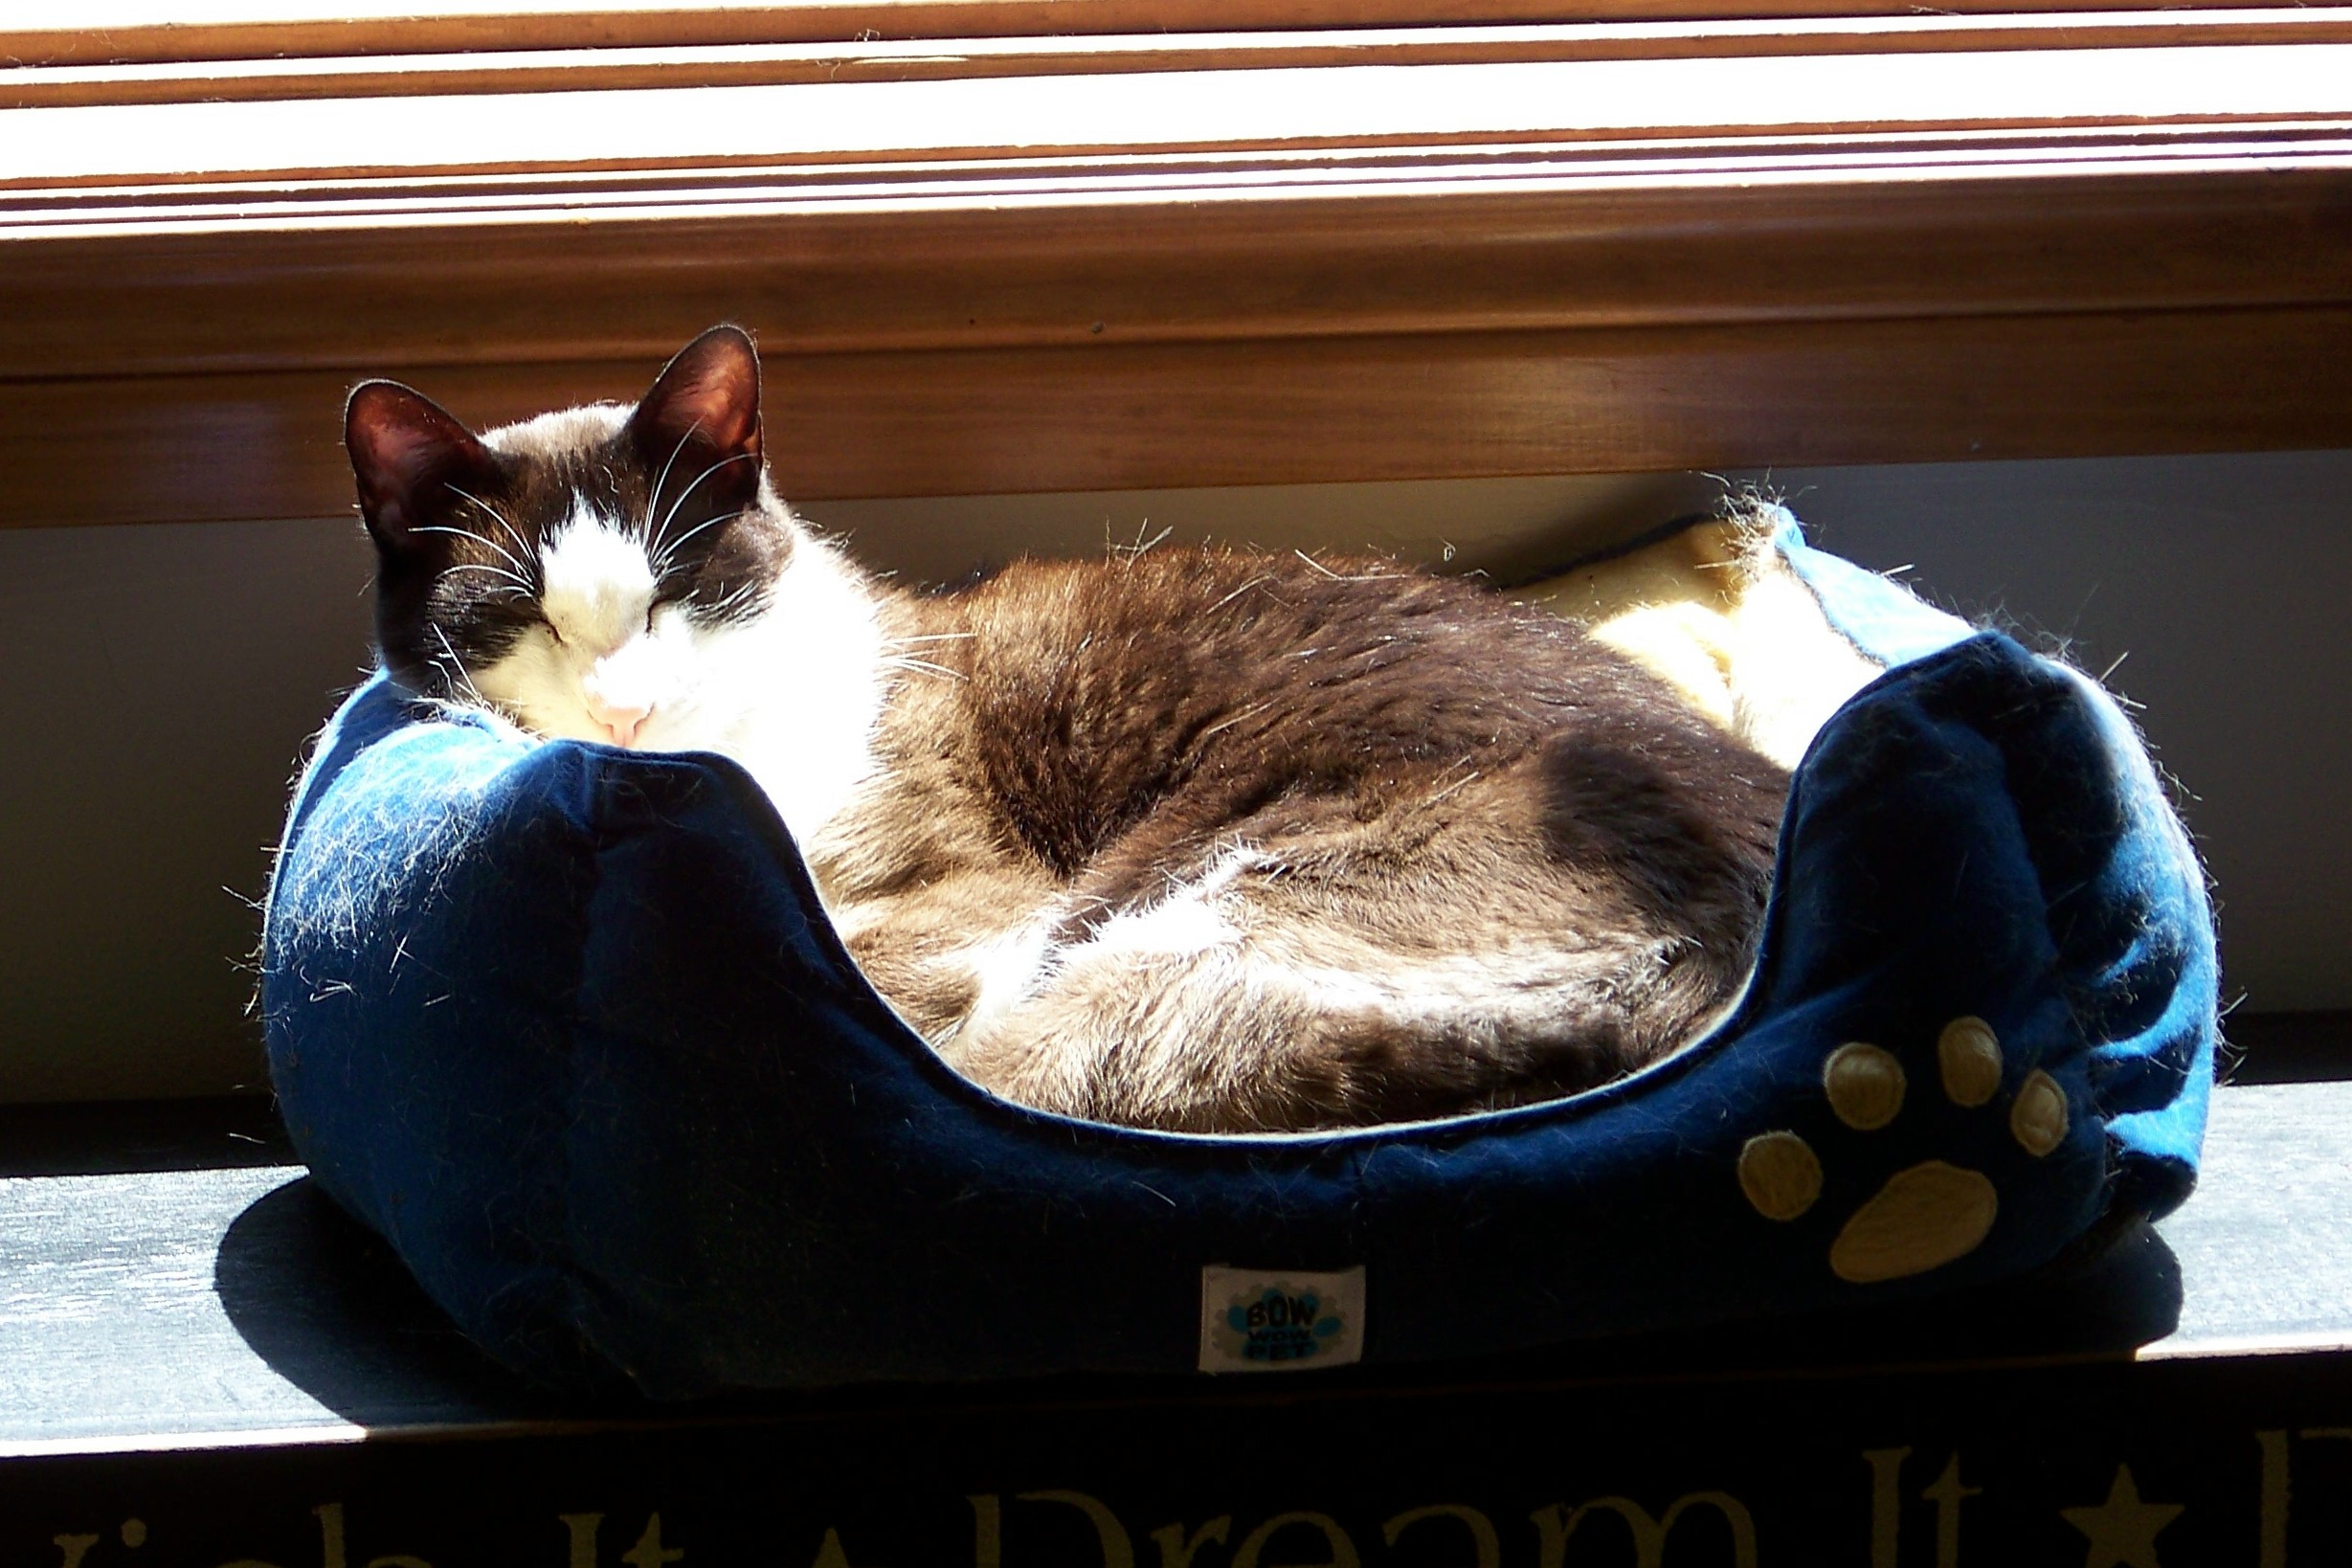 Traditionalist Tonka, snoozing in the cat bed.